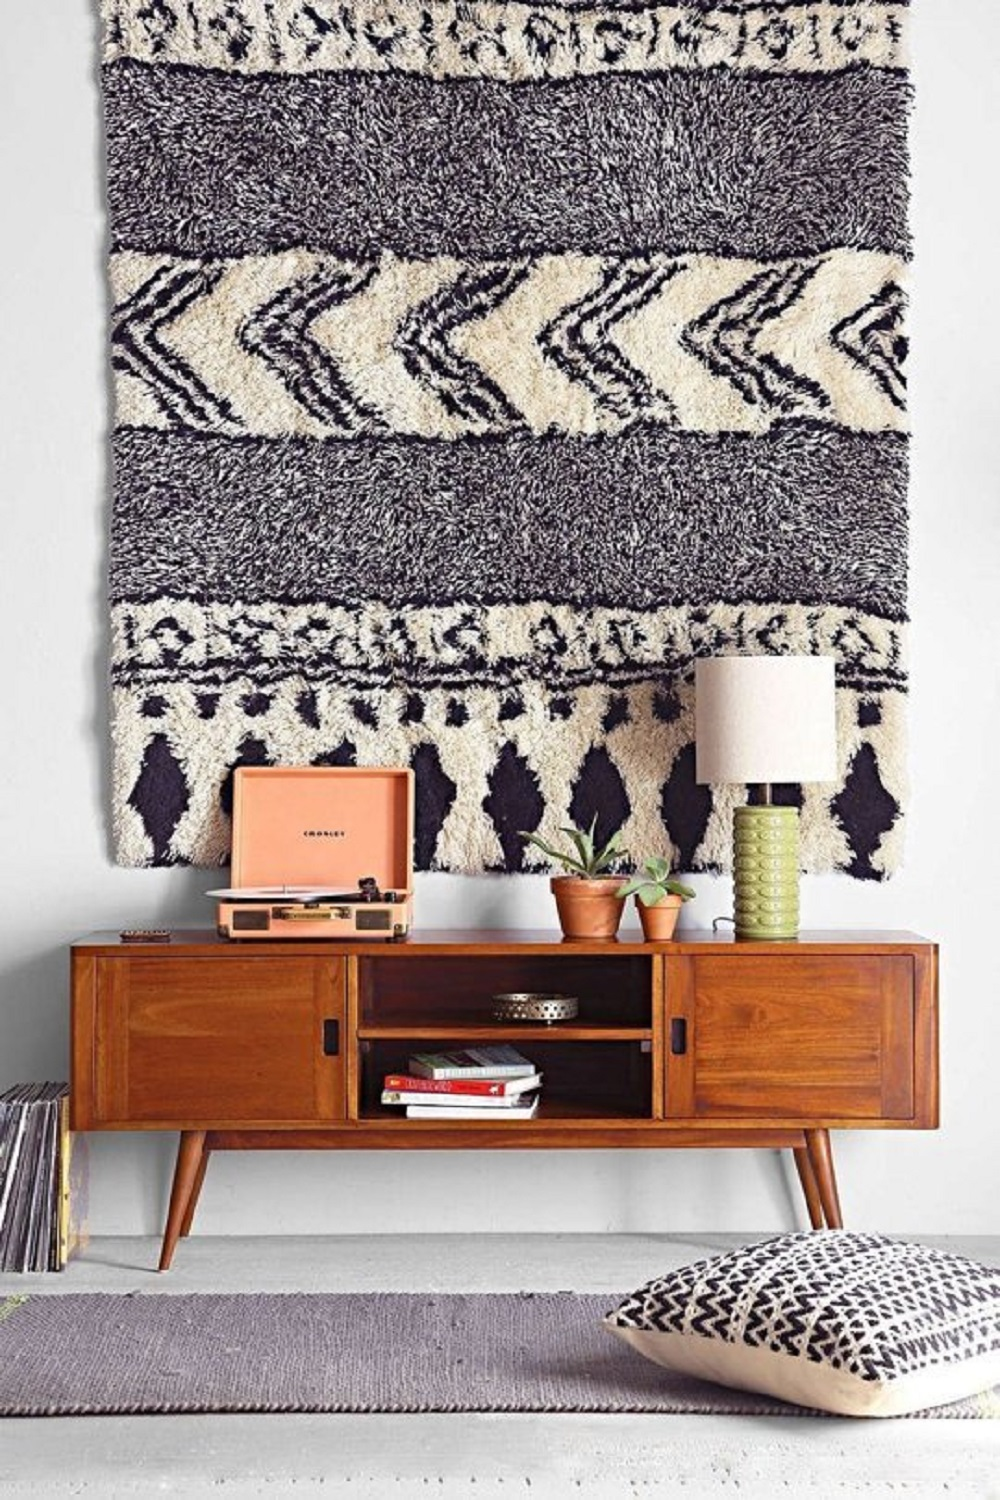 Hanging Rugs Mounting Your Oriental Rug As A Wall Hanging